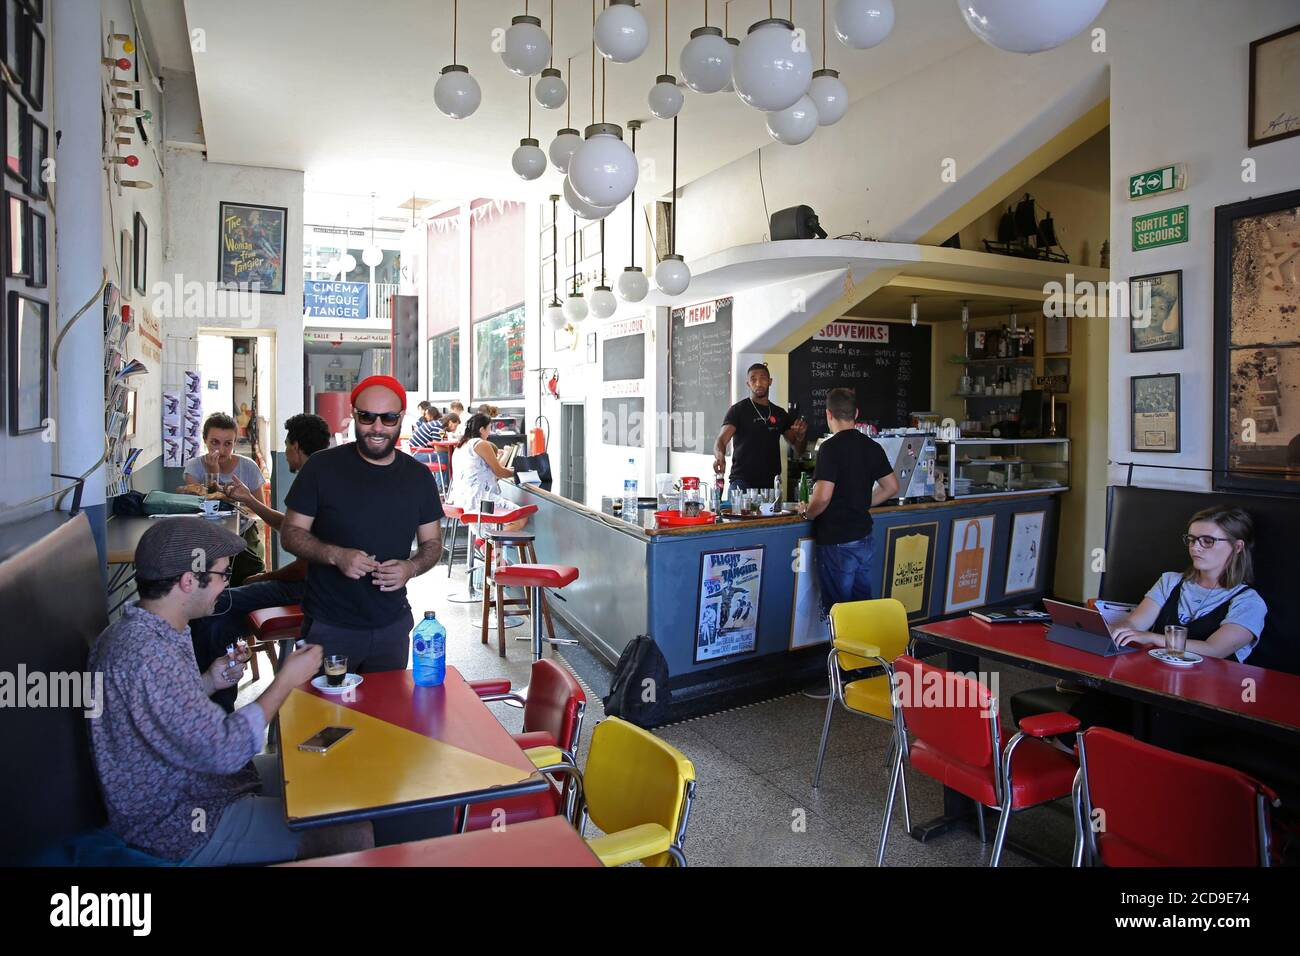 https www alamy com morocco tangier tetouan region tangier young tangierois connected in the cafe art deco of the rif cinema image369617000 html